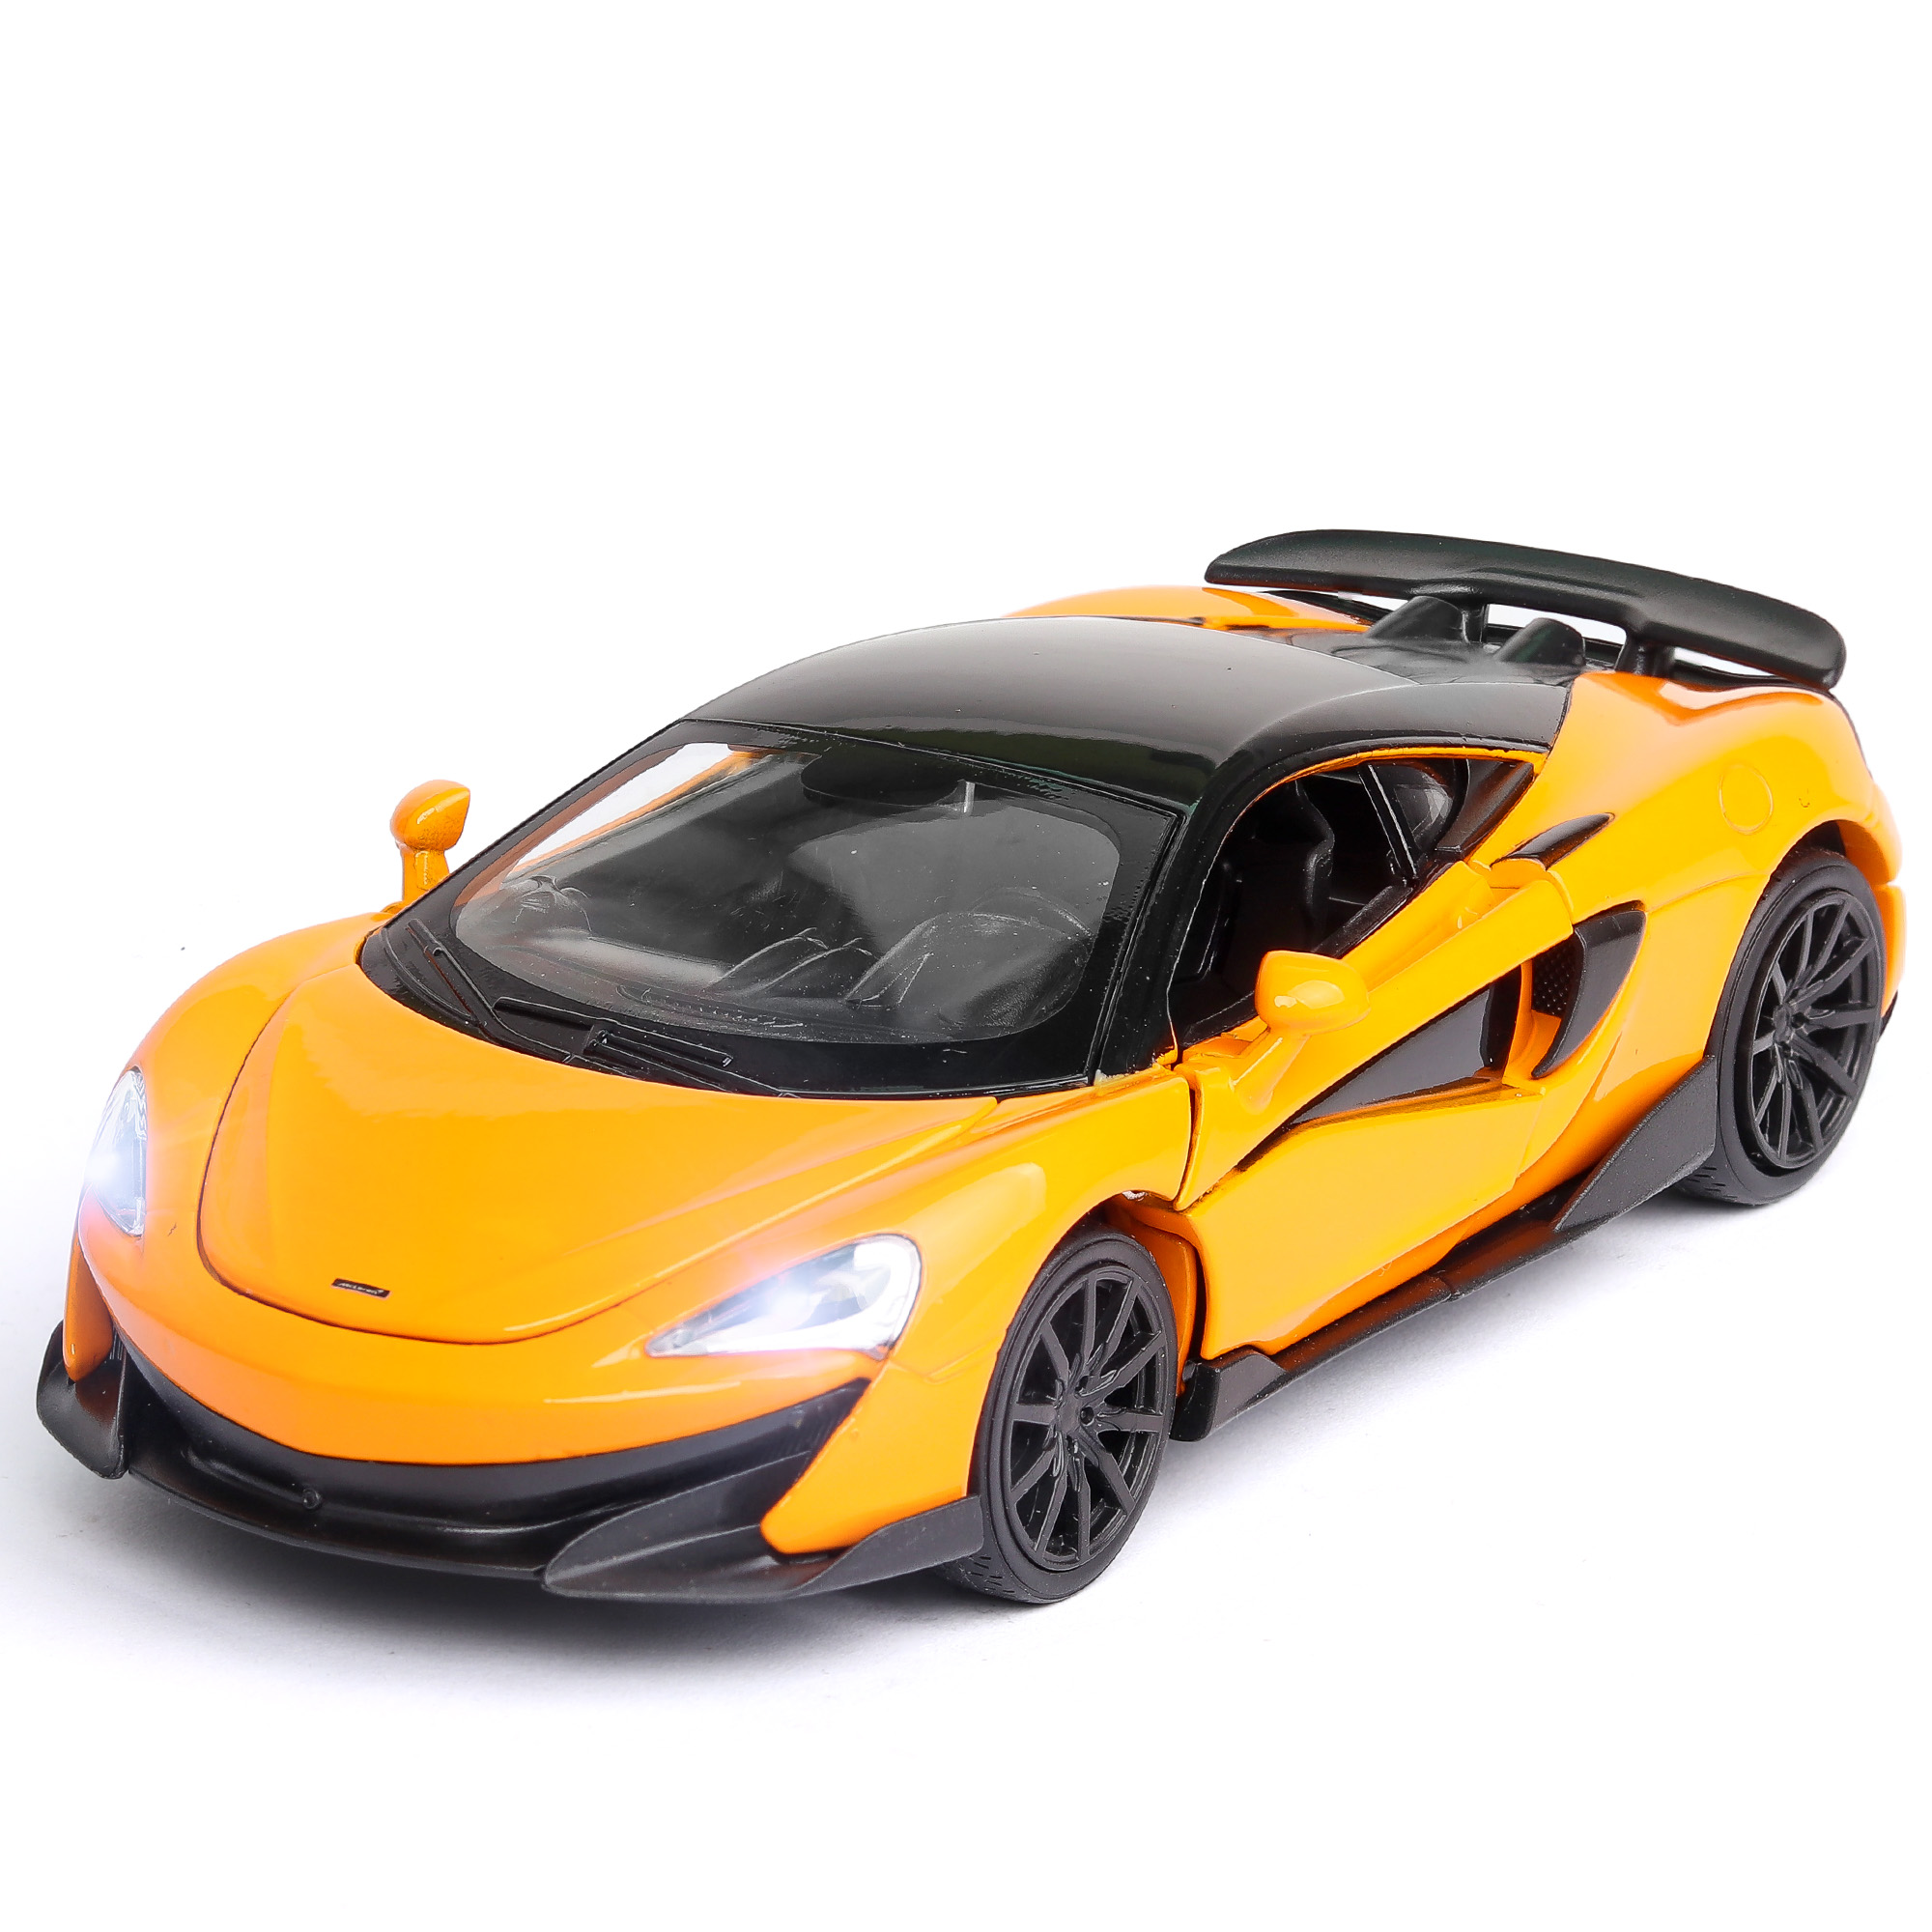 1/32 Diecast Alloy Sport Car Model McLaren 600LT Pull Back With Sound Light Diecasts Toy Vehicles For Children Birthday Gifts